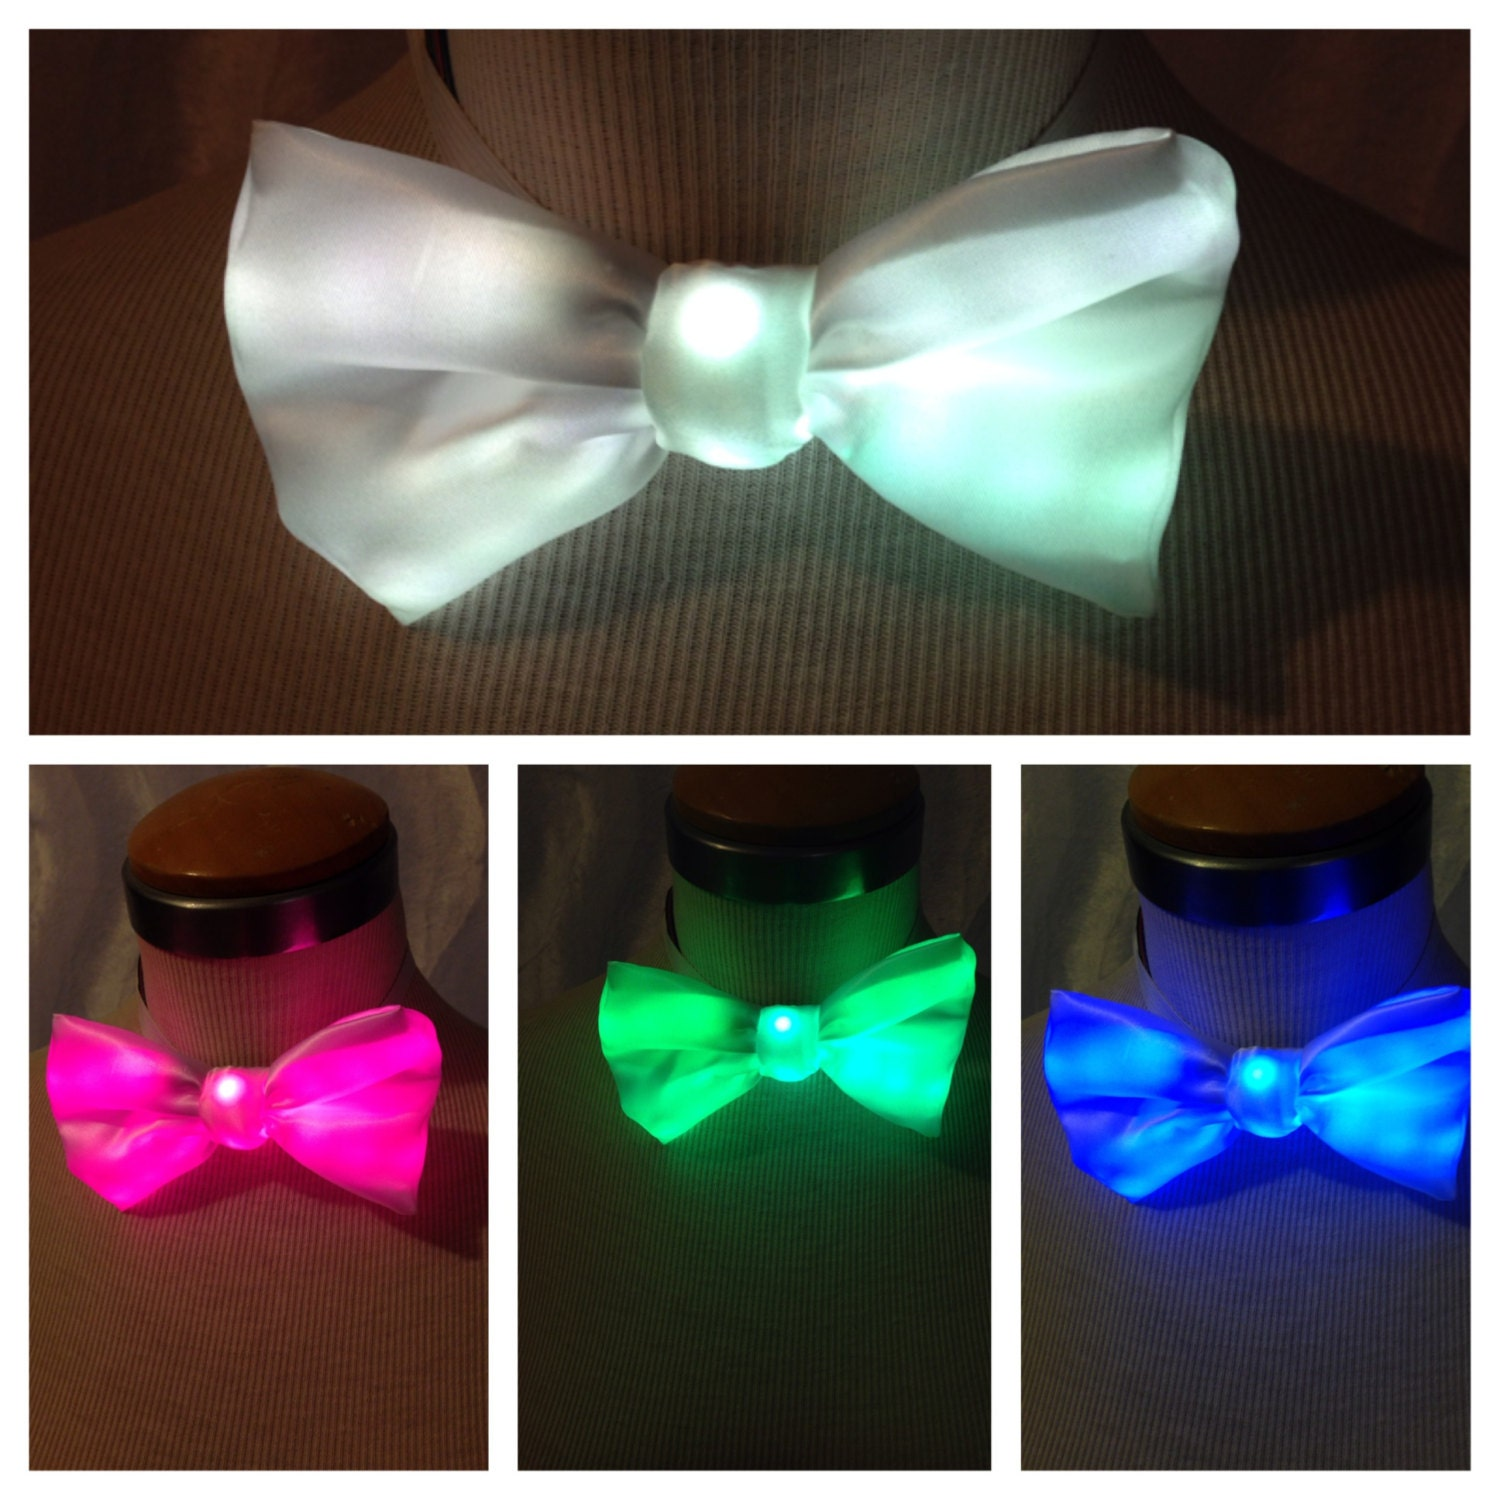 color changing bow tie light up clothing by illuminatedcouture